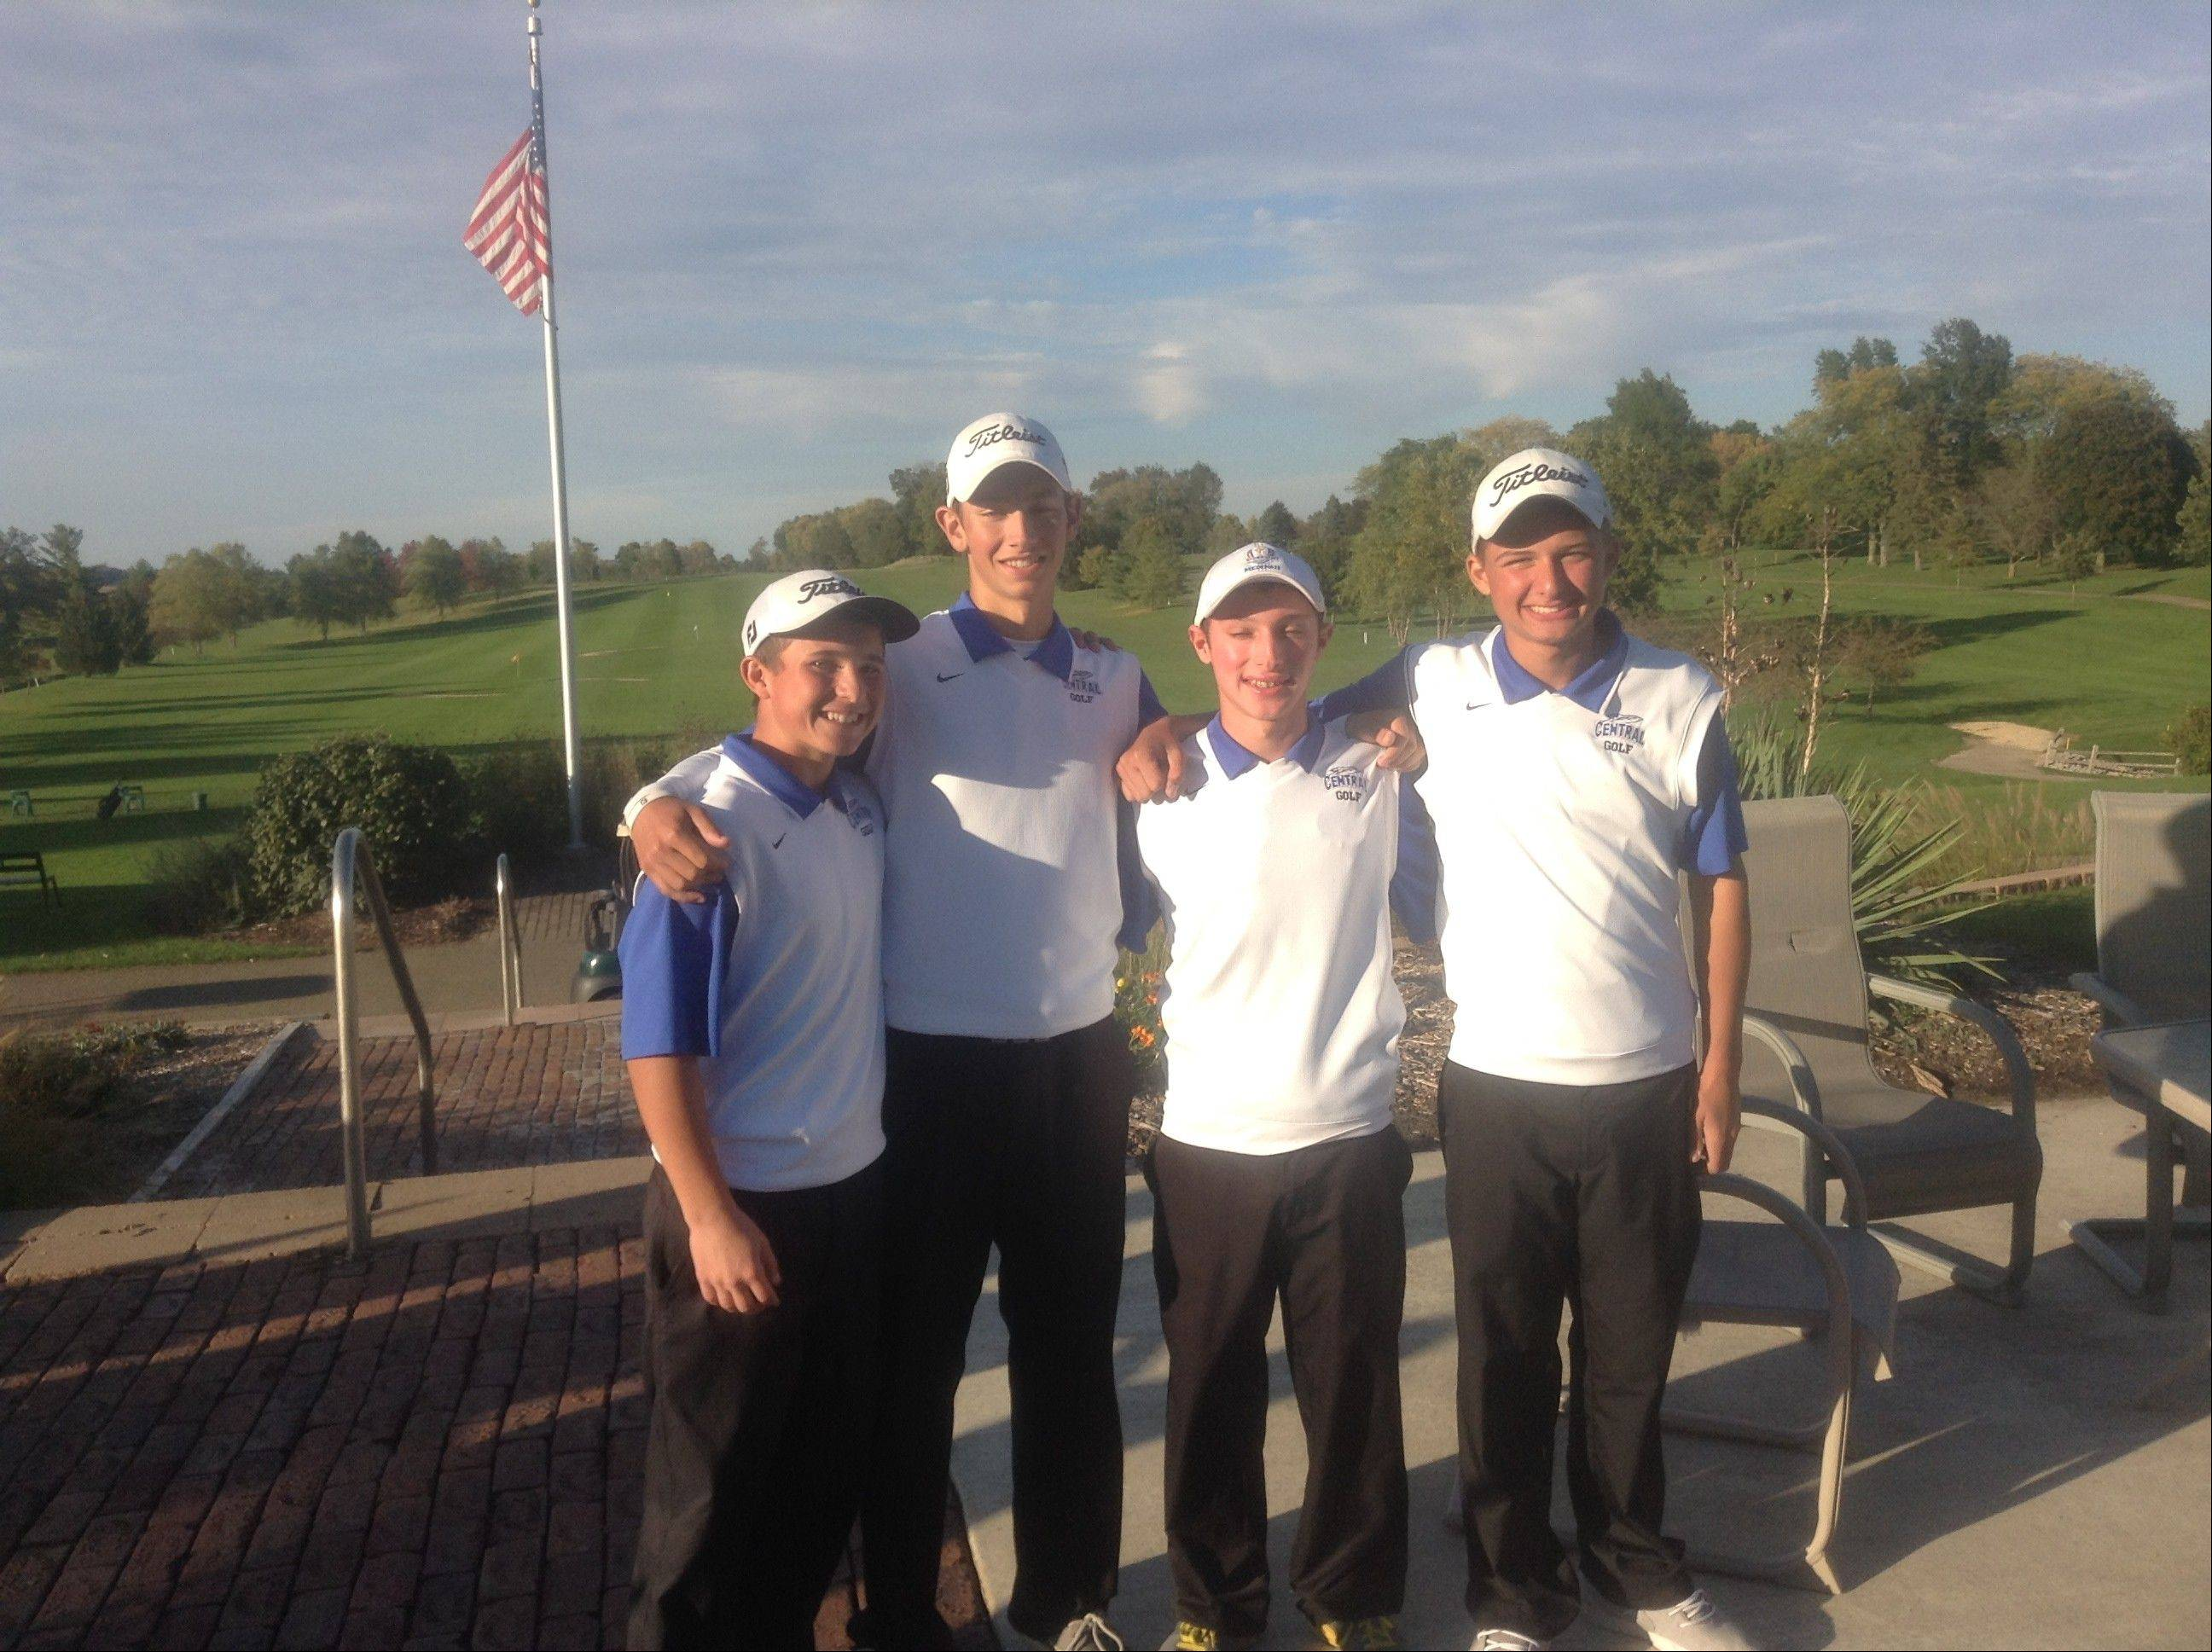 The four top players for the Burlington Central boys golf team Monday at the Class 2A Freeport sectional were Andrew Sherman, from left, Matt Weber, Joe Sherman and Austin Niesel. The Rockets advanced to this weekend's state tournament for just the second time in program history.